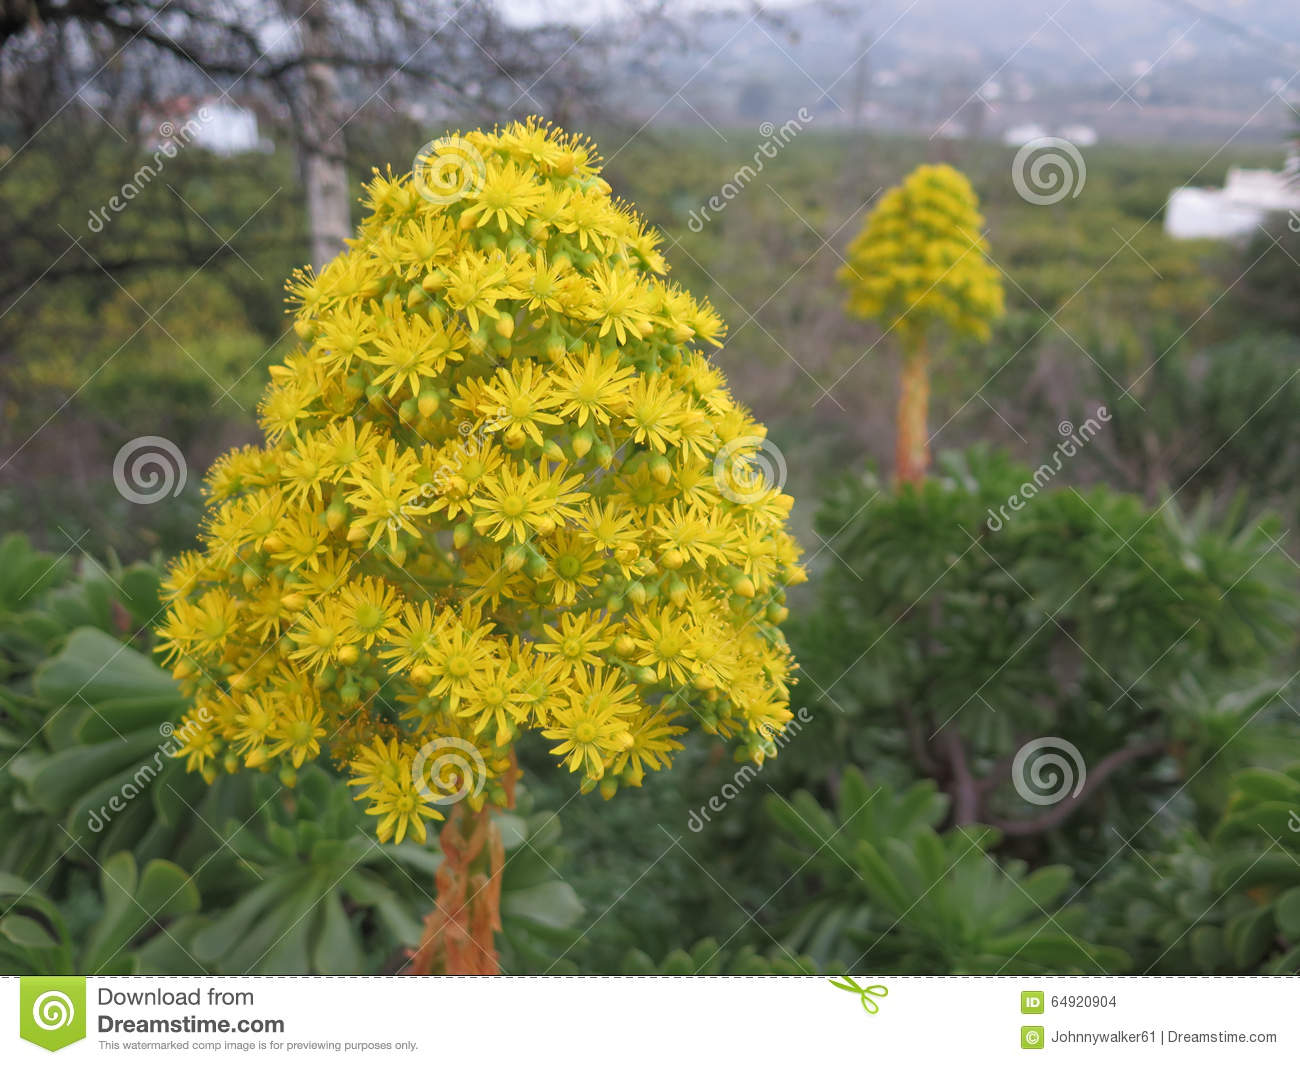 Large yellow flower stock photo image of succulent green 64920904 download large yellow flower stock photo image of succulent green 64920904 mightylinksfo